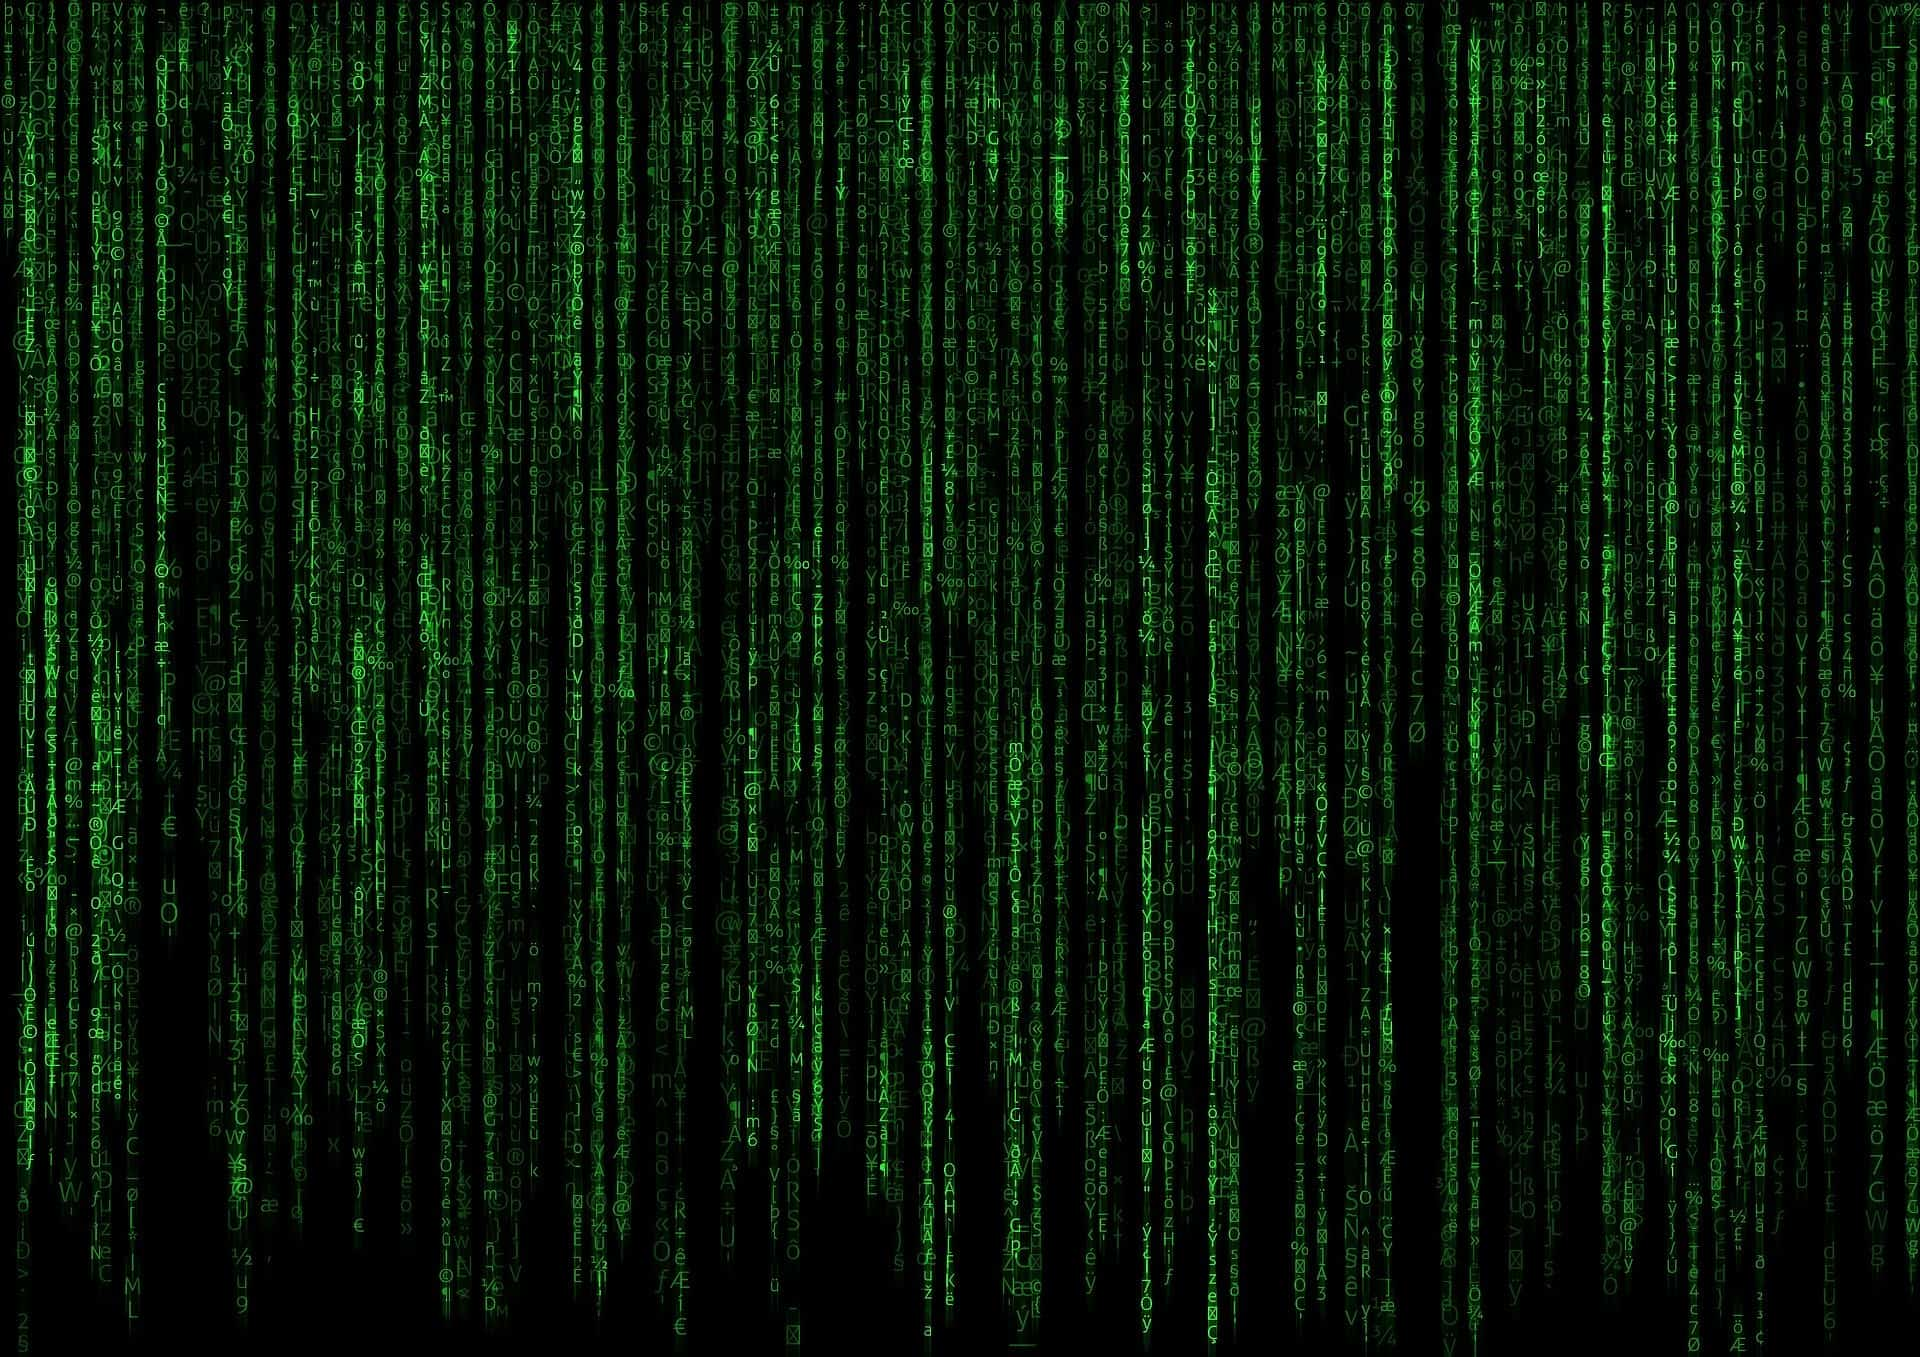 Green data cascading down the screen, matrix style